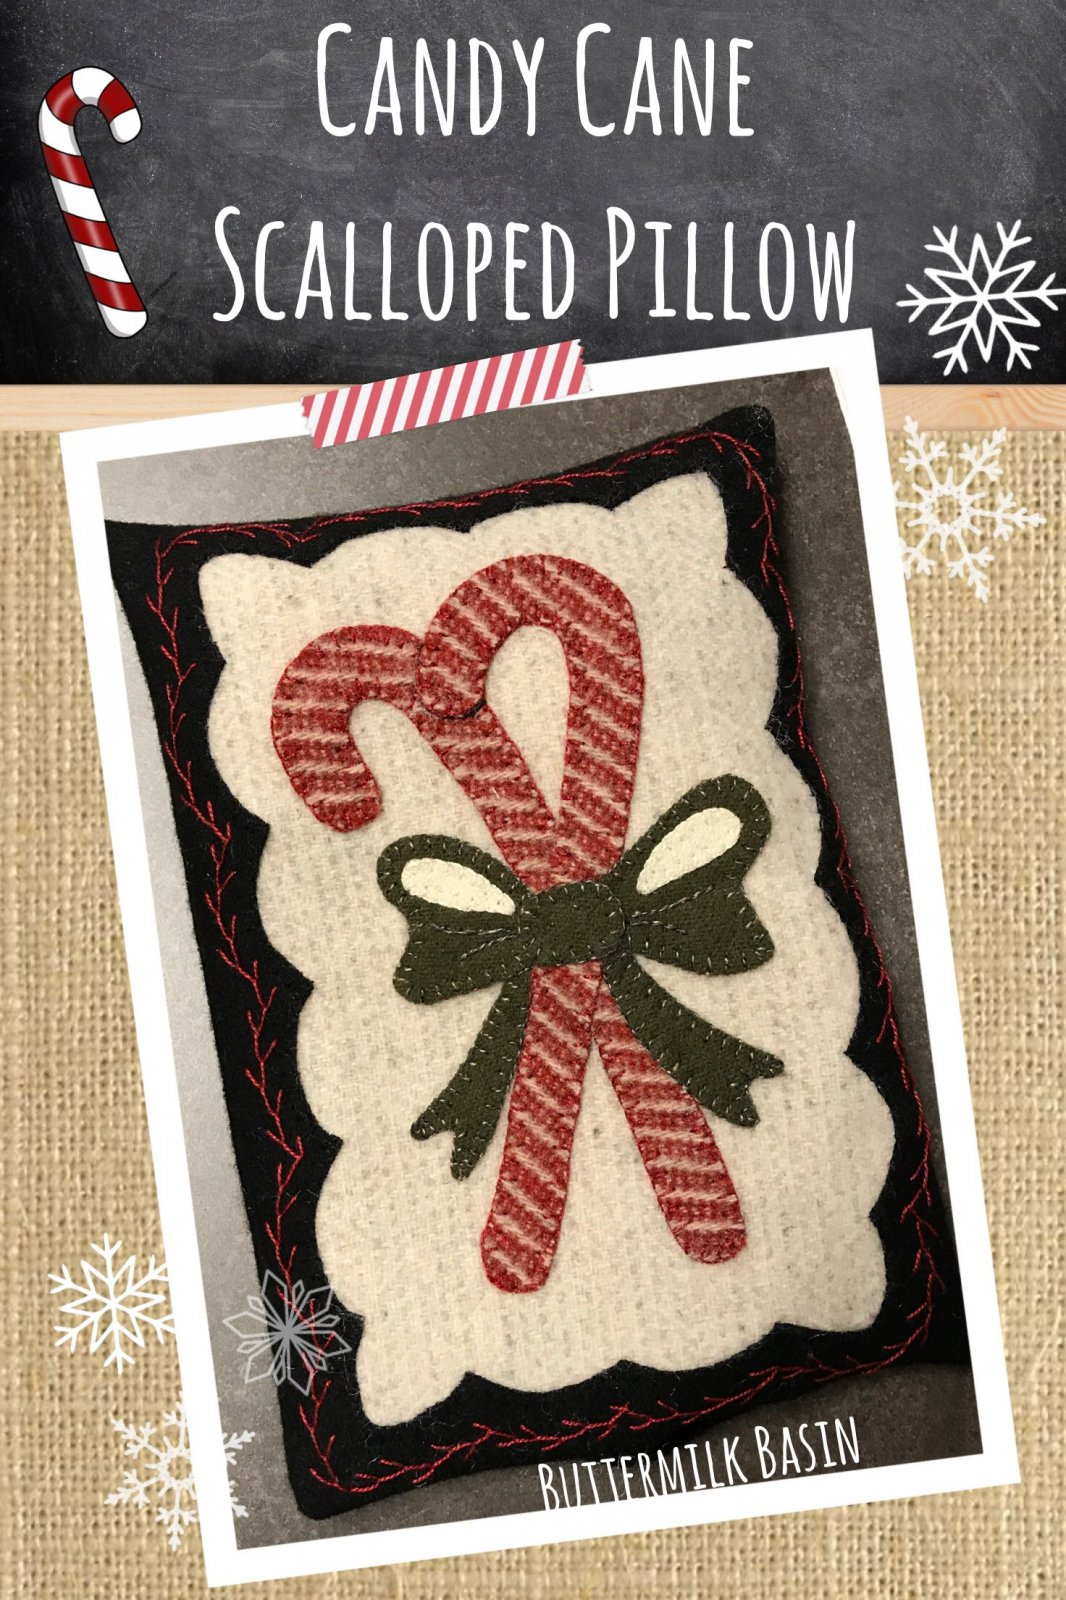 Candy Cane Scalloped Pillow * KIT